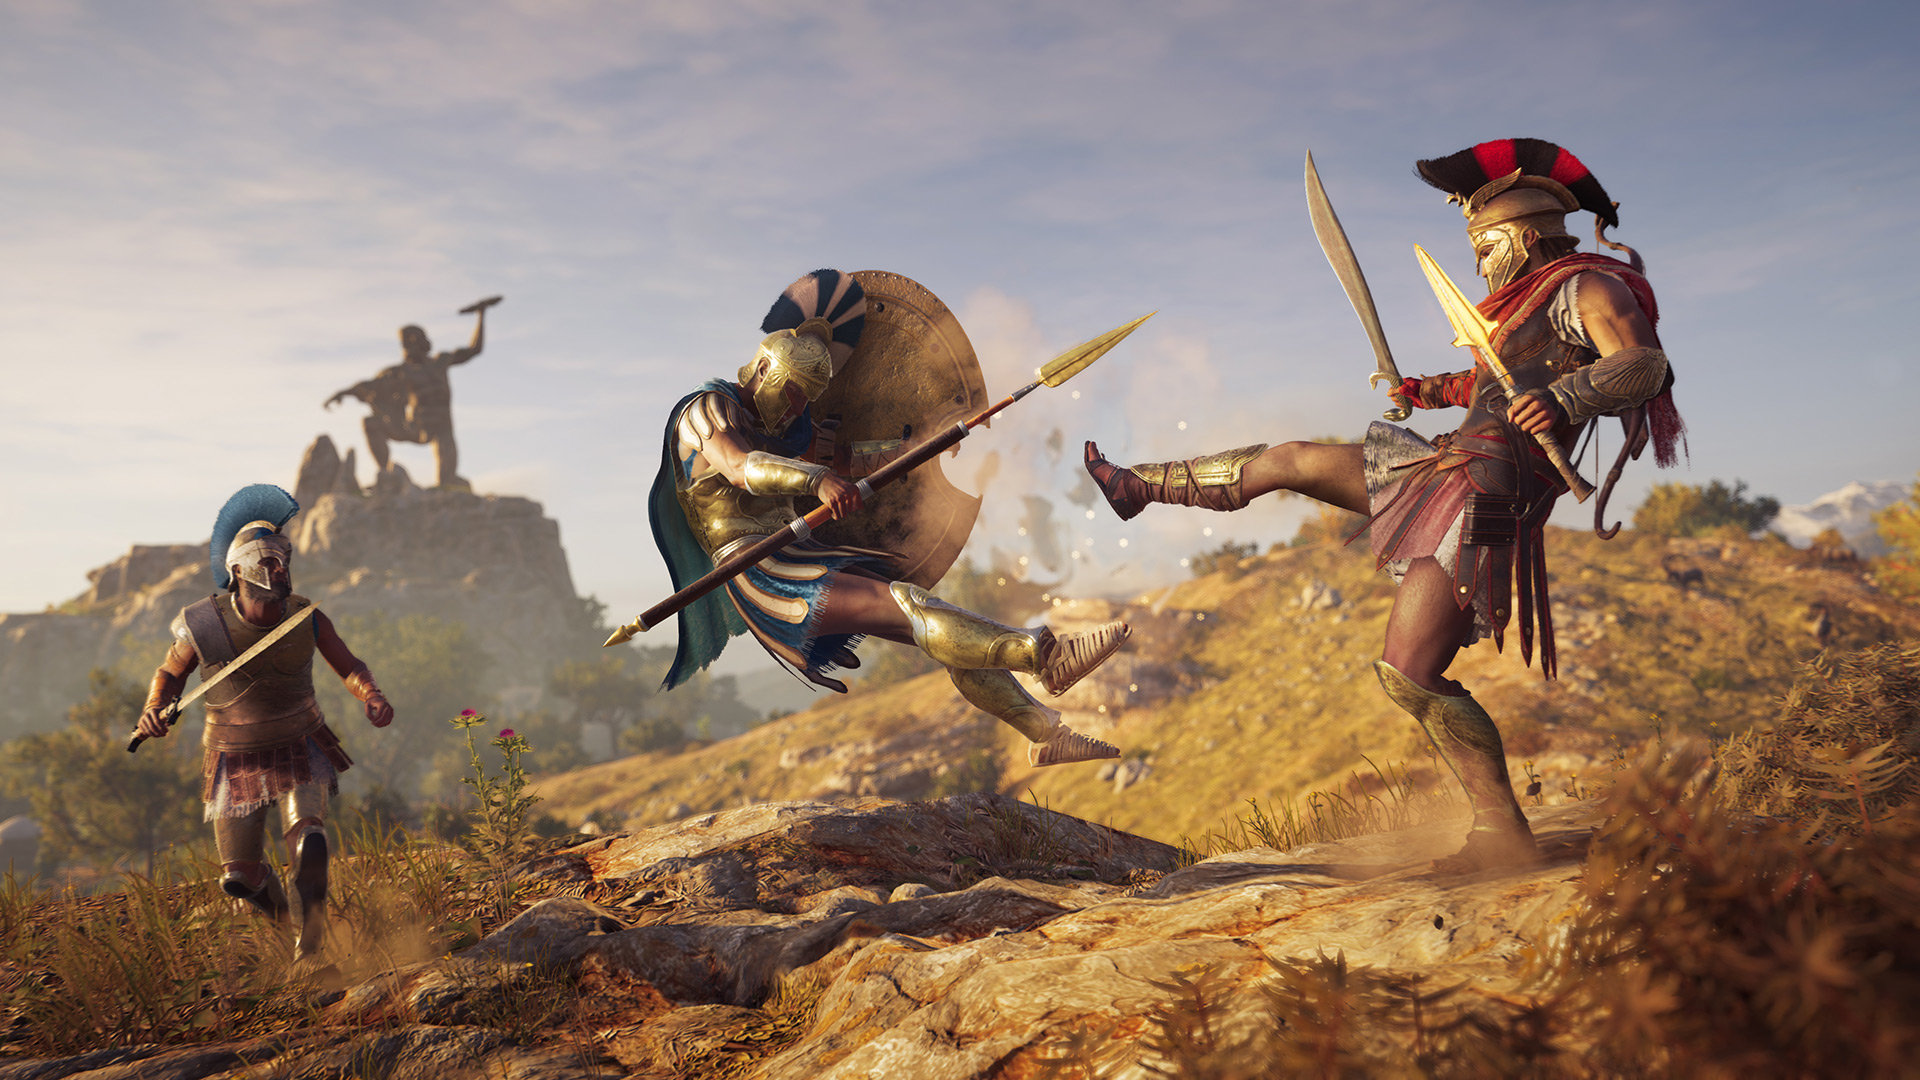 After two false starts Assassin's Creed Odyssey is suspending epic mercenary events screenshot